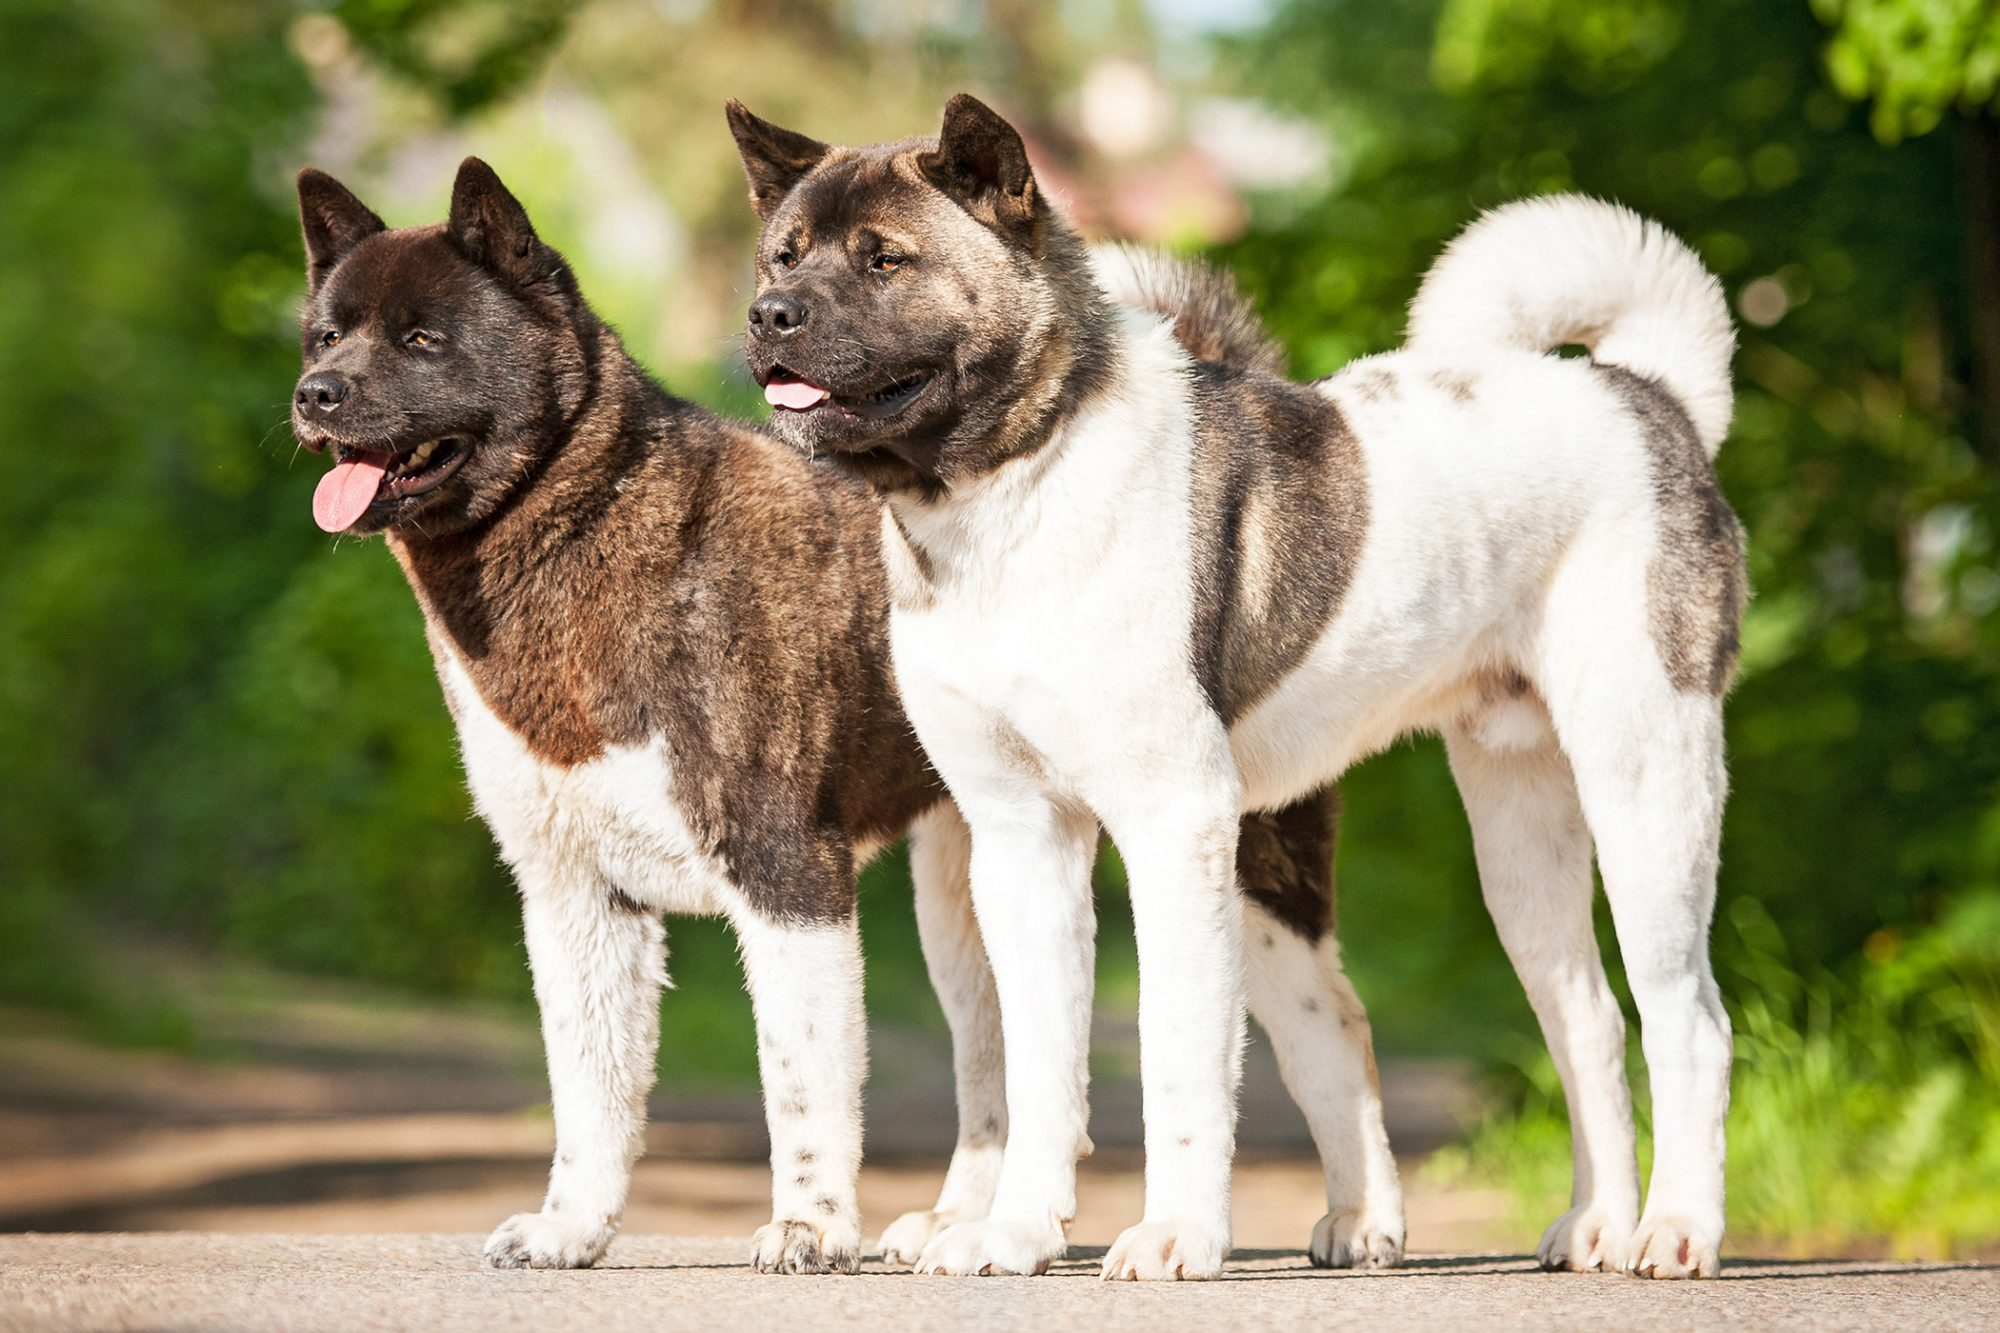 Two Brown and White Akita dogs standing side by side